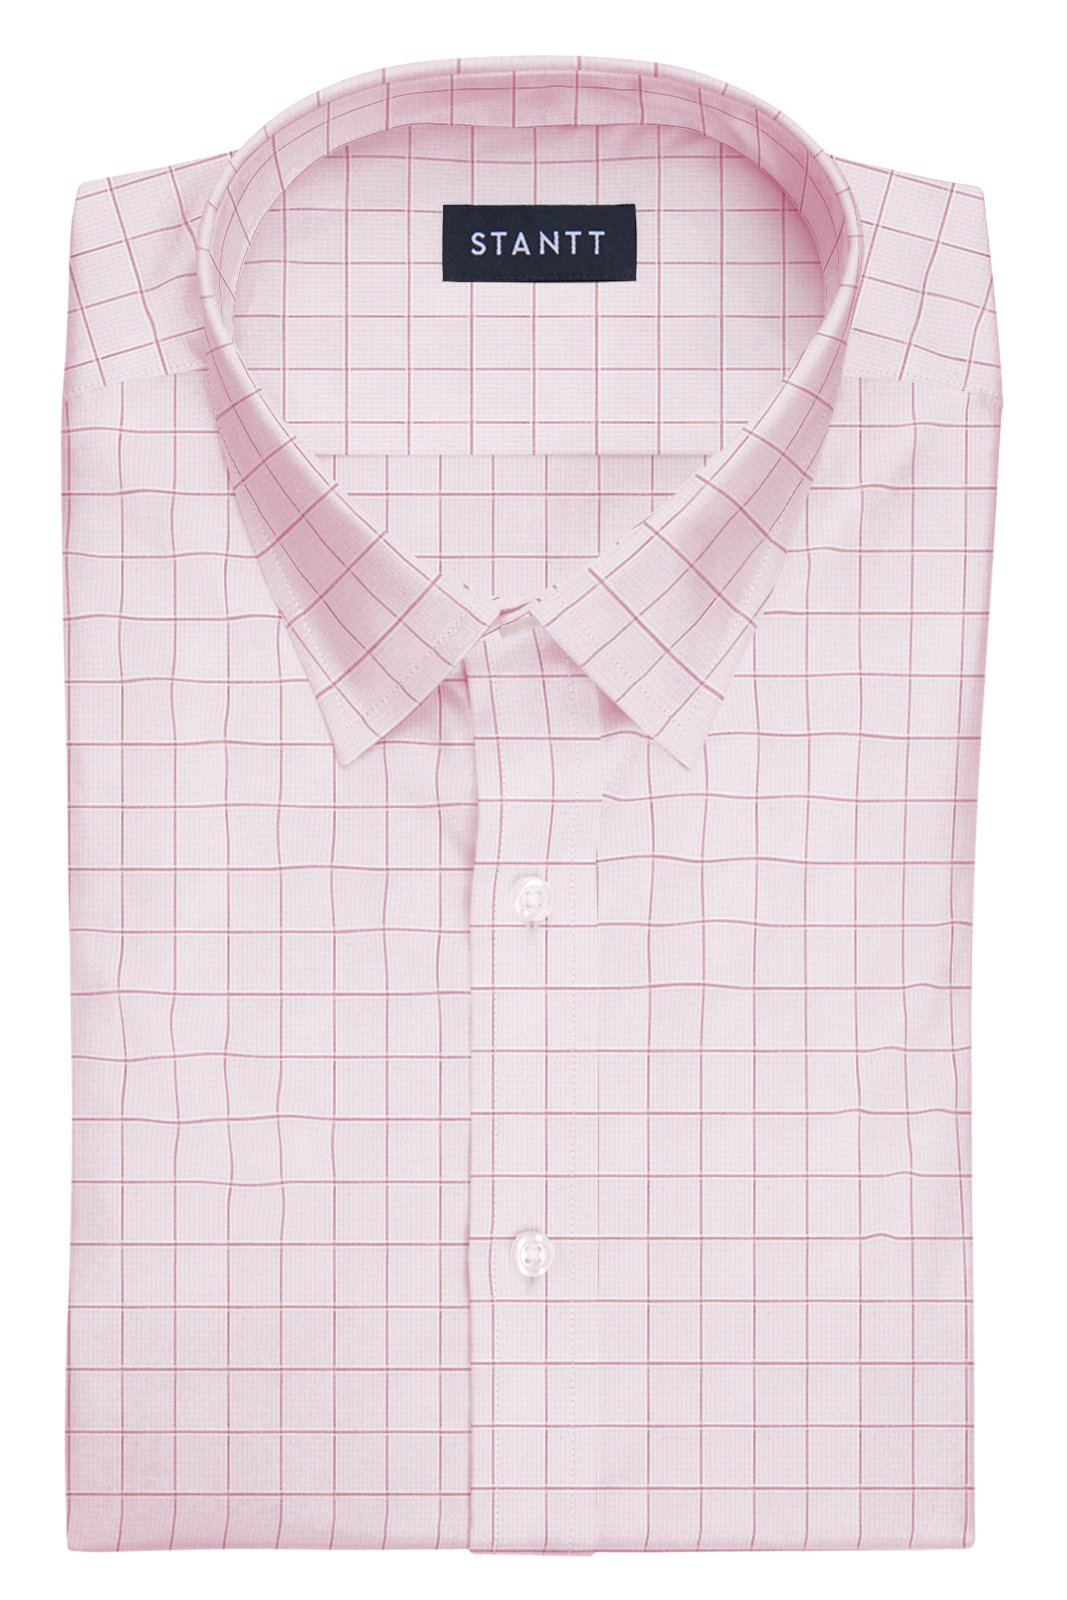 Light Pink Prince of Wales Check: Semi-Spread Collar, French Cuff